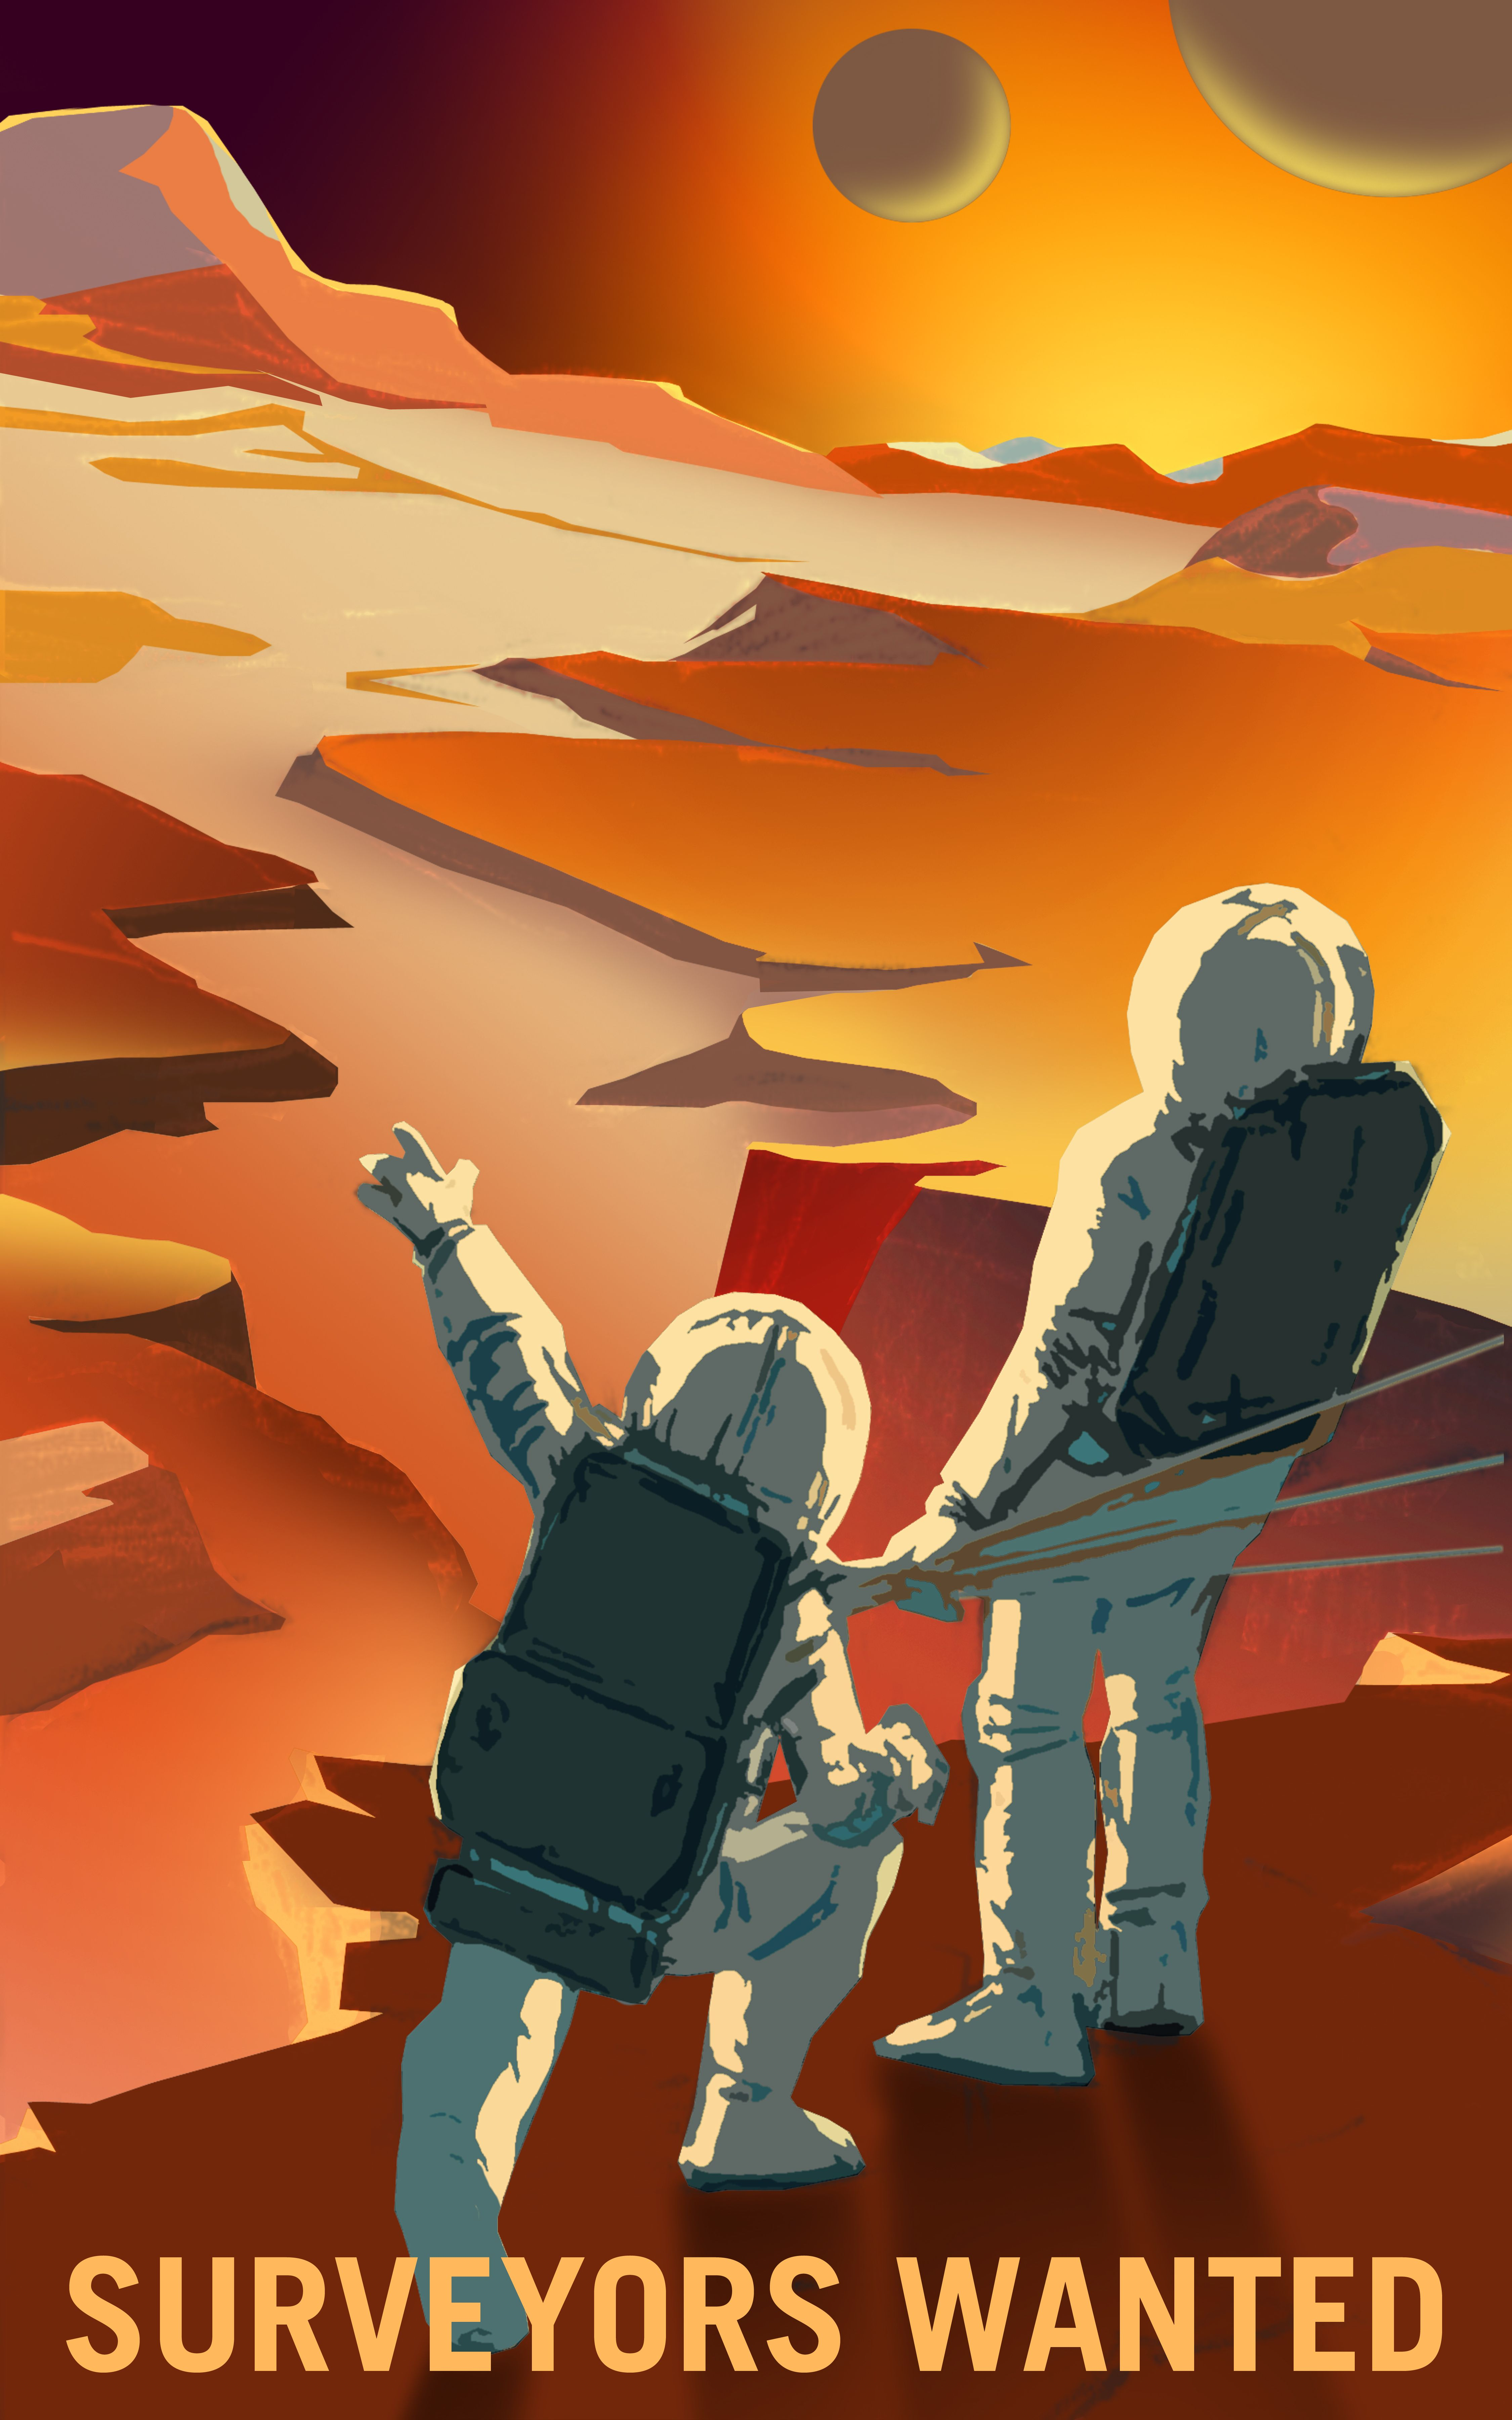 NASAs Mars Recruitment Posters Will Convince You To Go Die In - Retro style posters from nasa imagine how the future of space travel will look